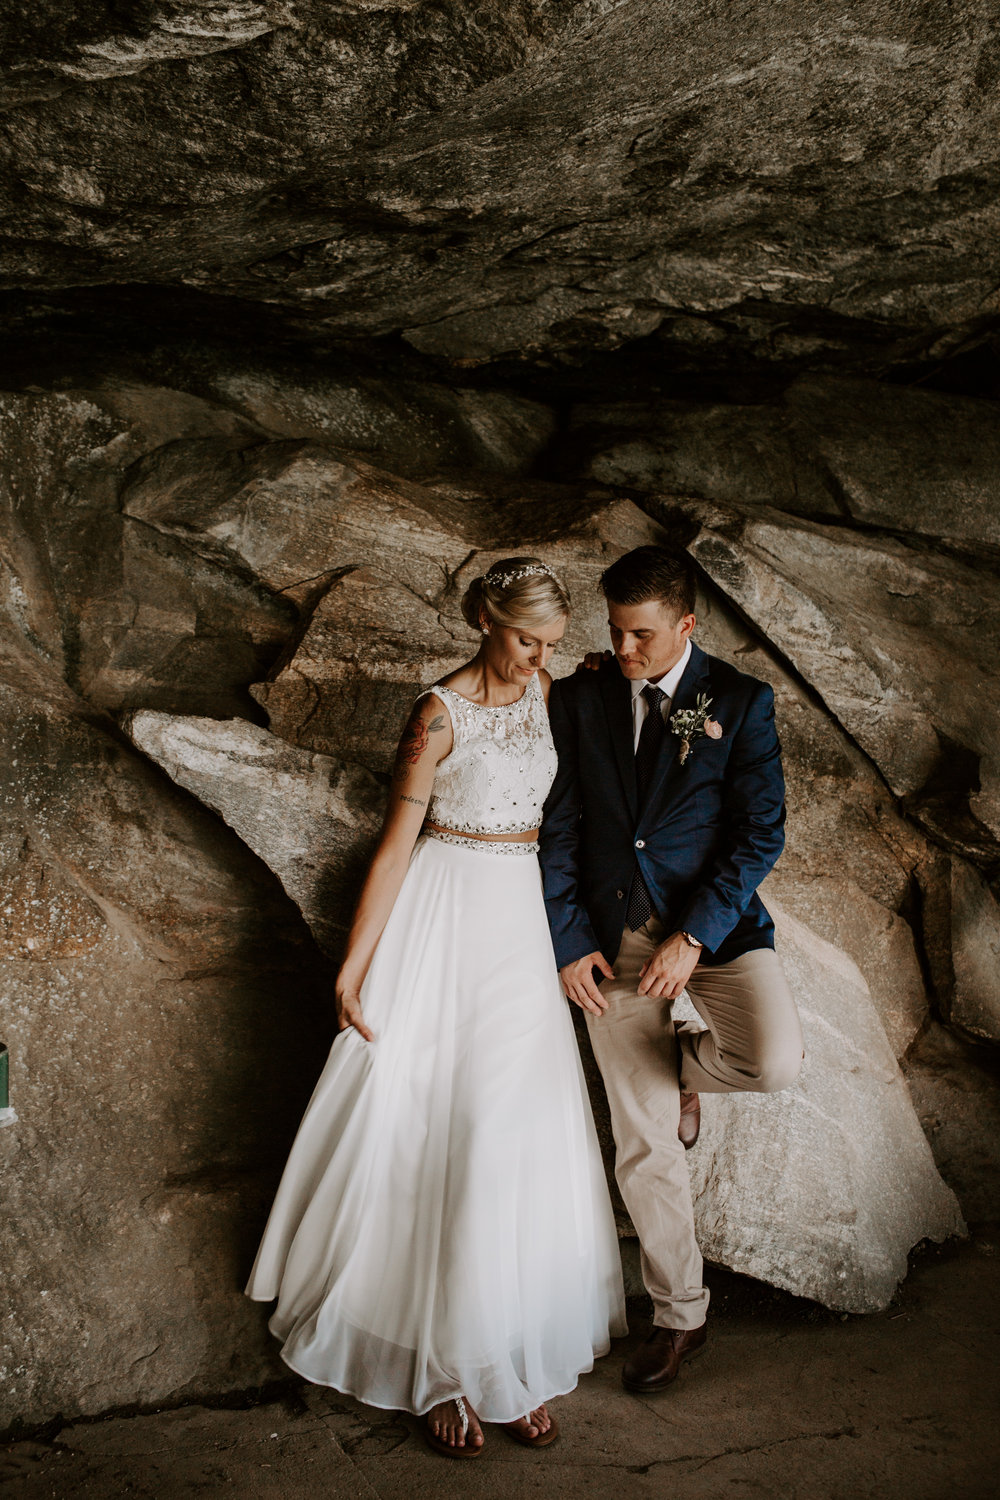 Miranda&braedon_ashevilleelopement (38 of 101).jpg